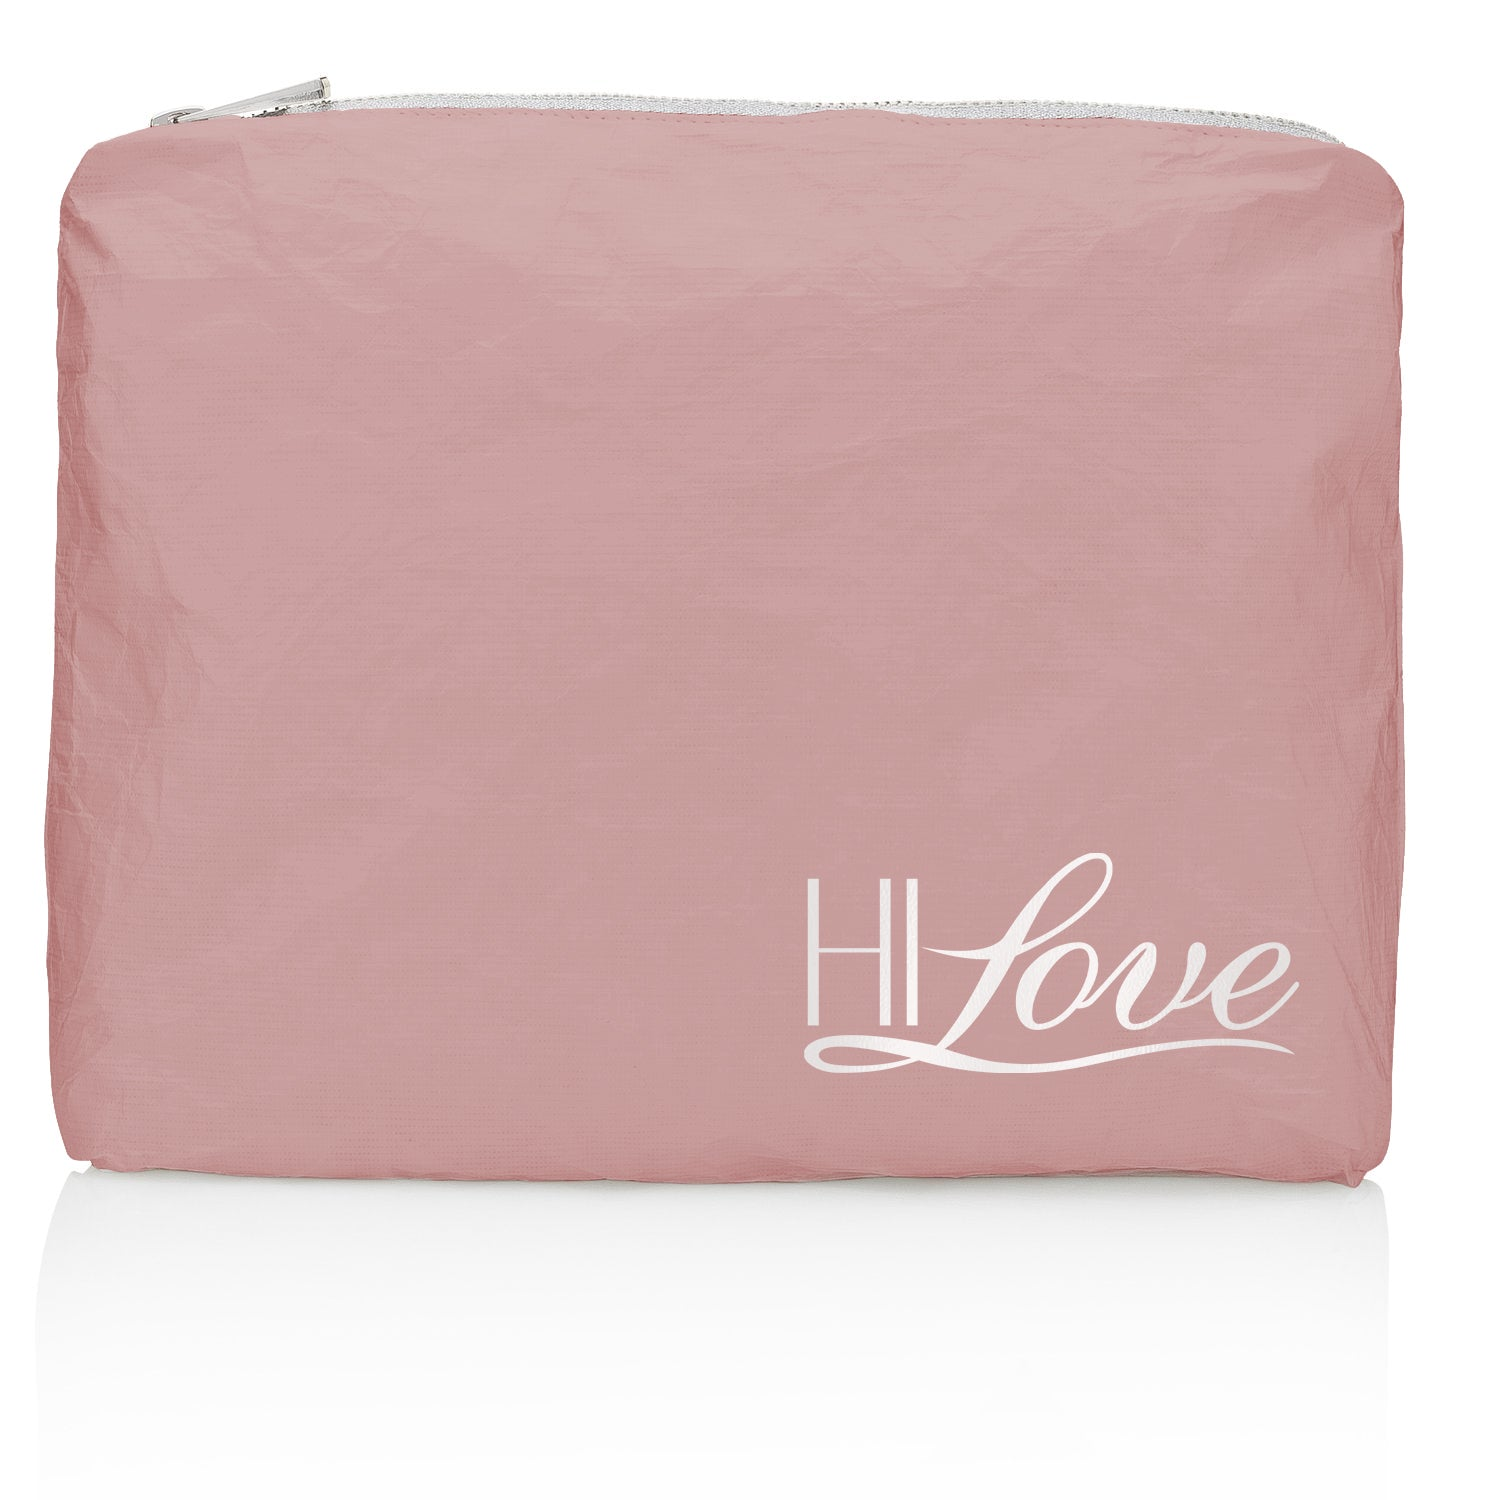 "Medium Pack - Shimmering Pink Sands with White ""Hi Love"""